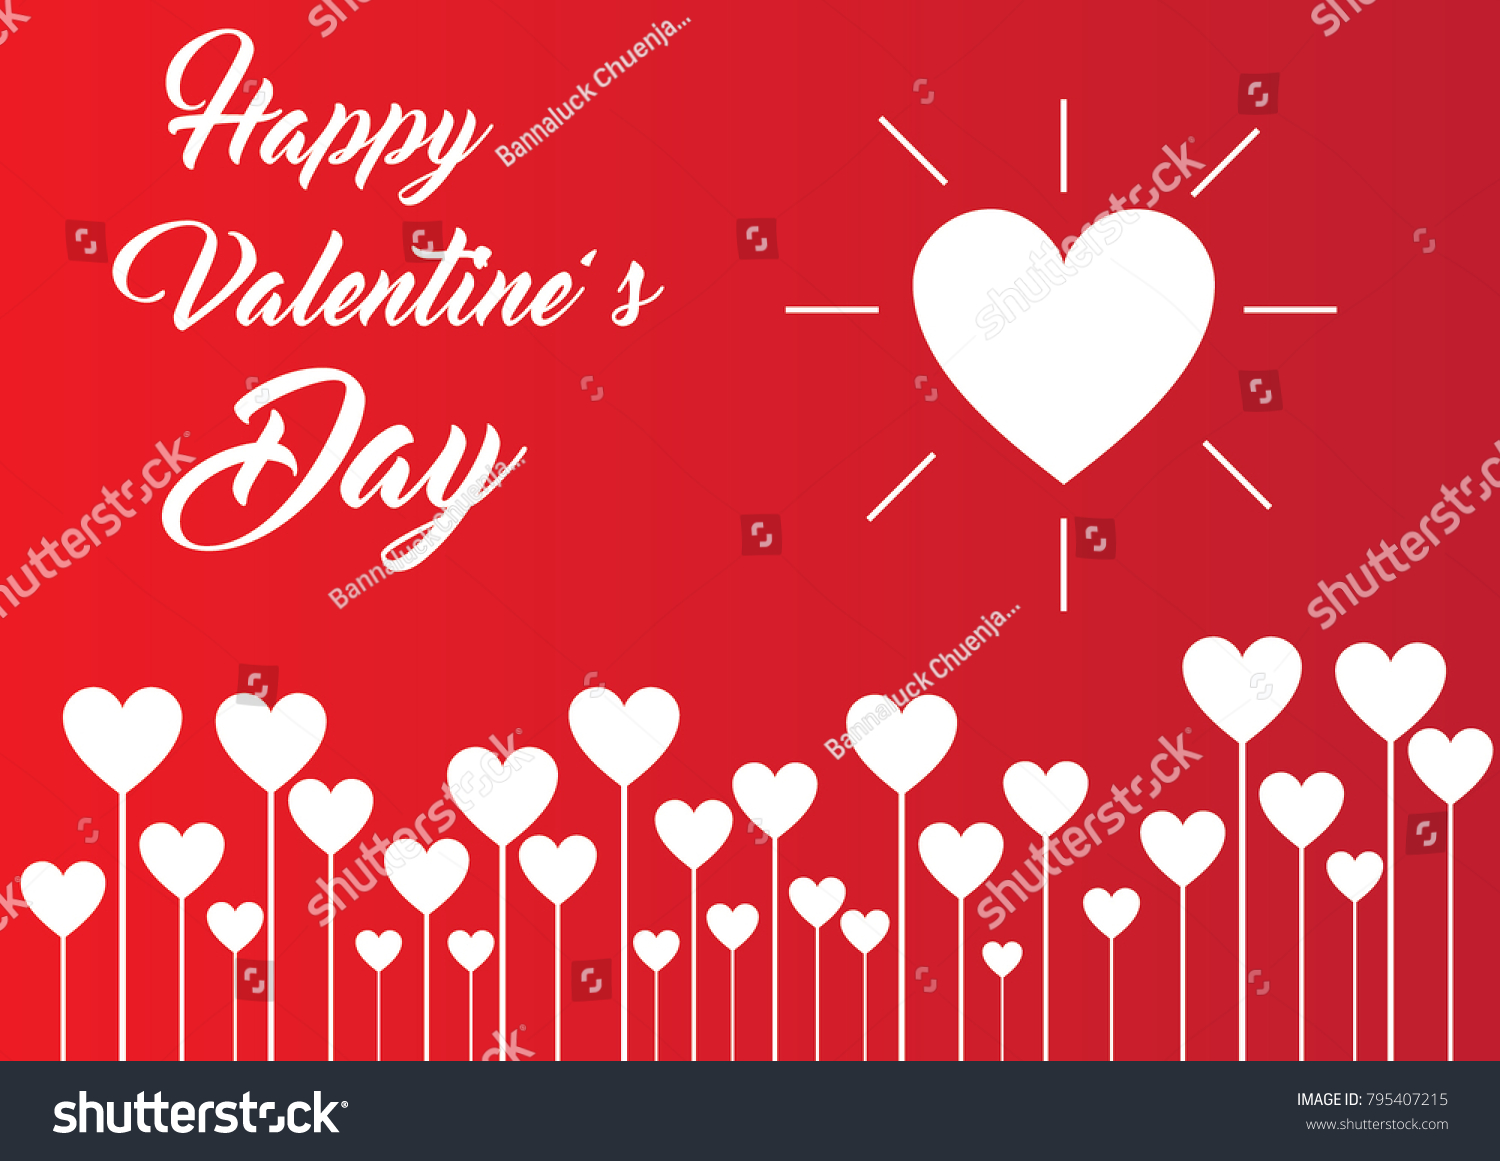 valentines day love hearts wallpaper background stock vector